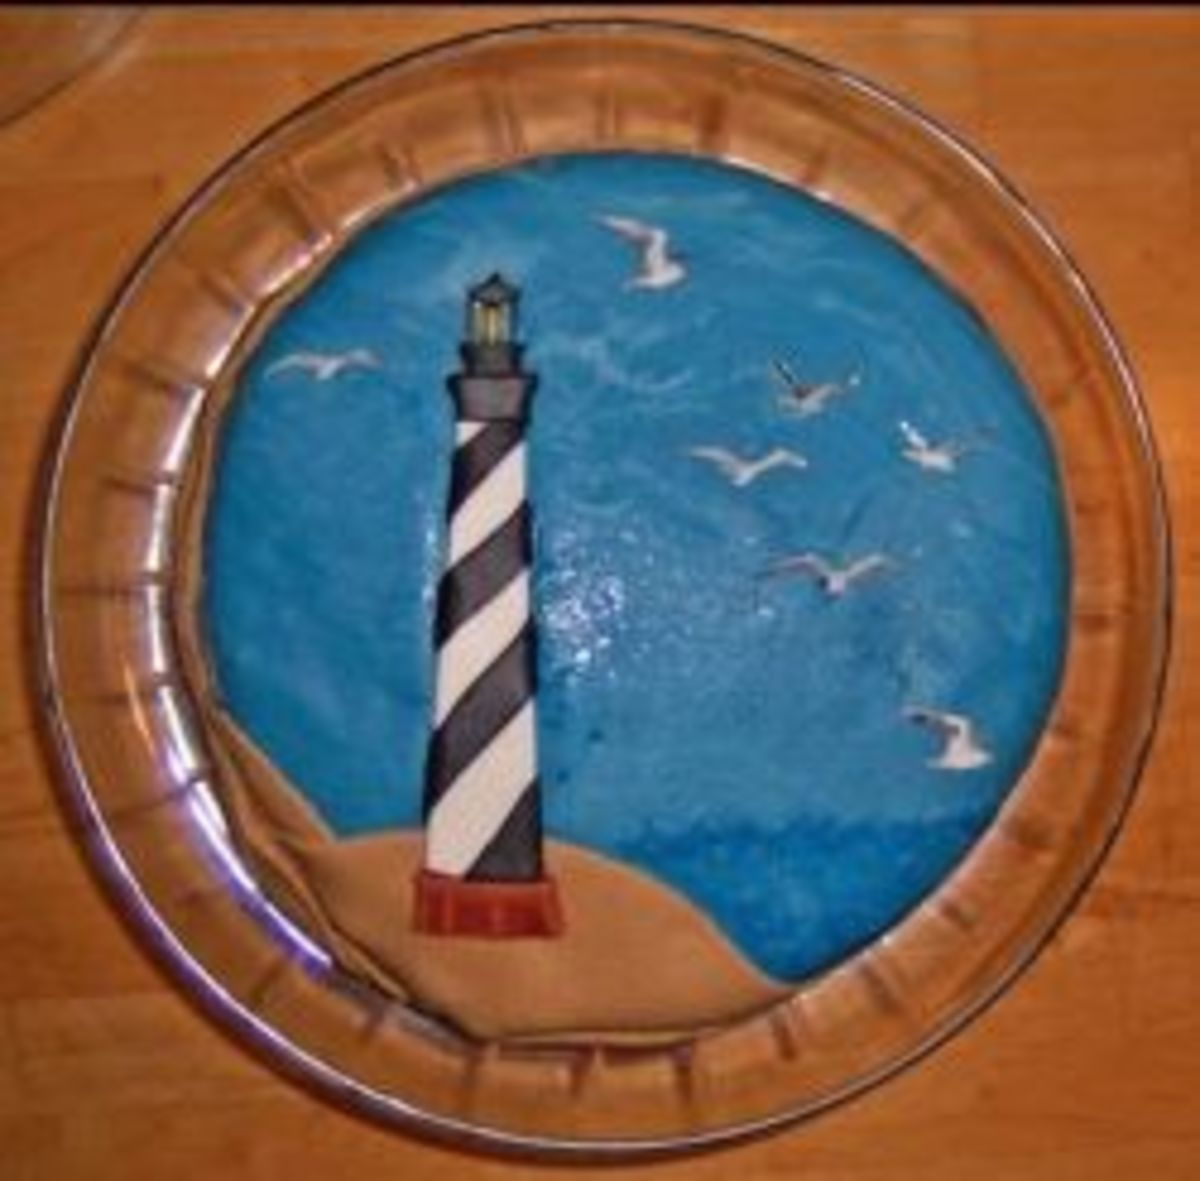 Black and white striped lighthouse on a cake